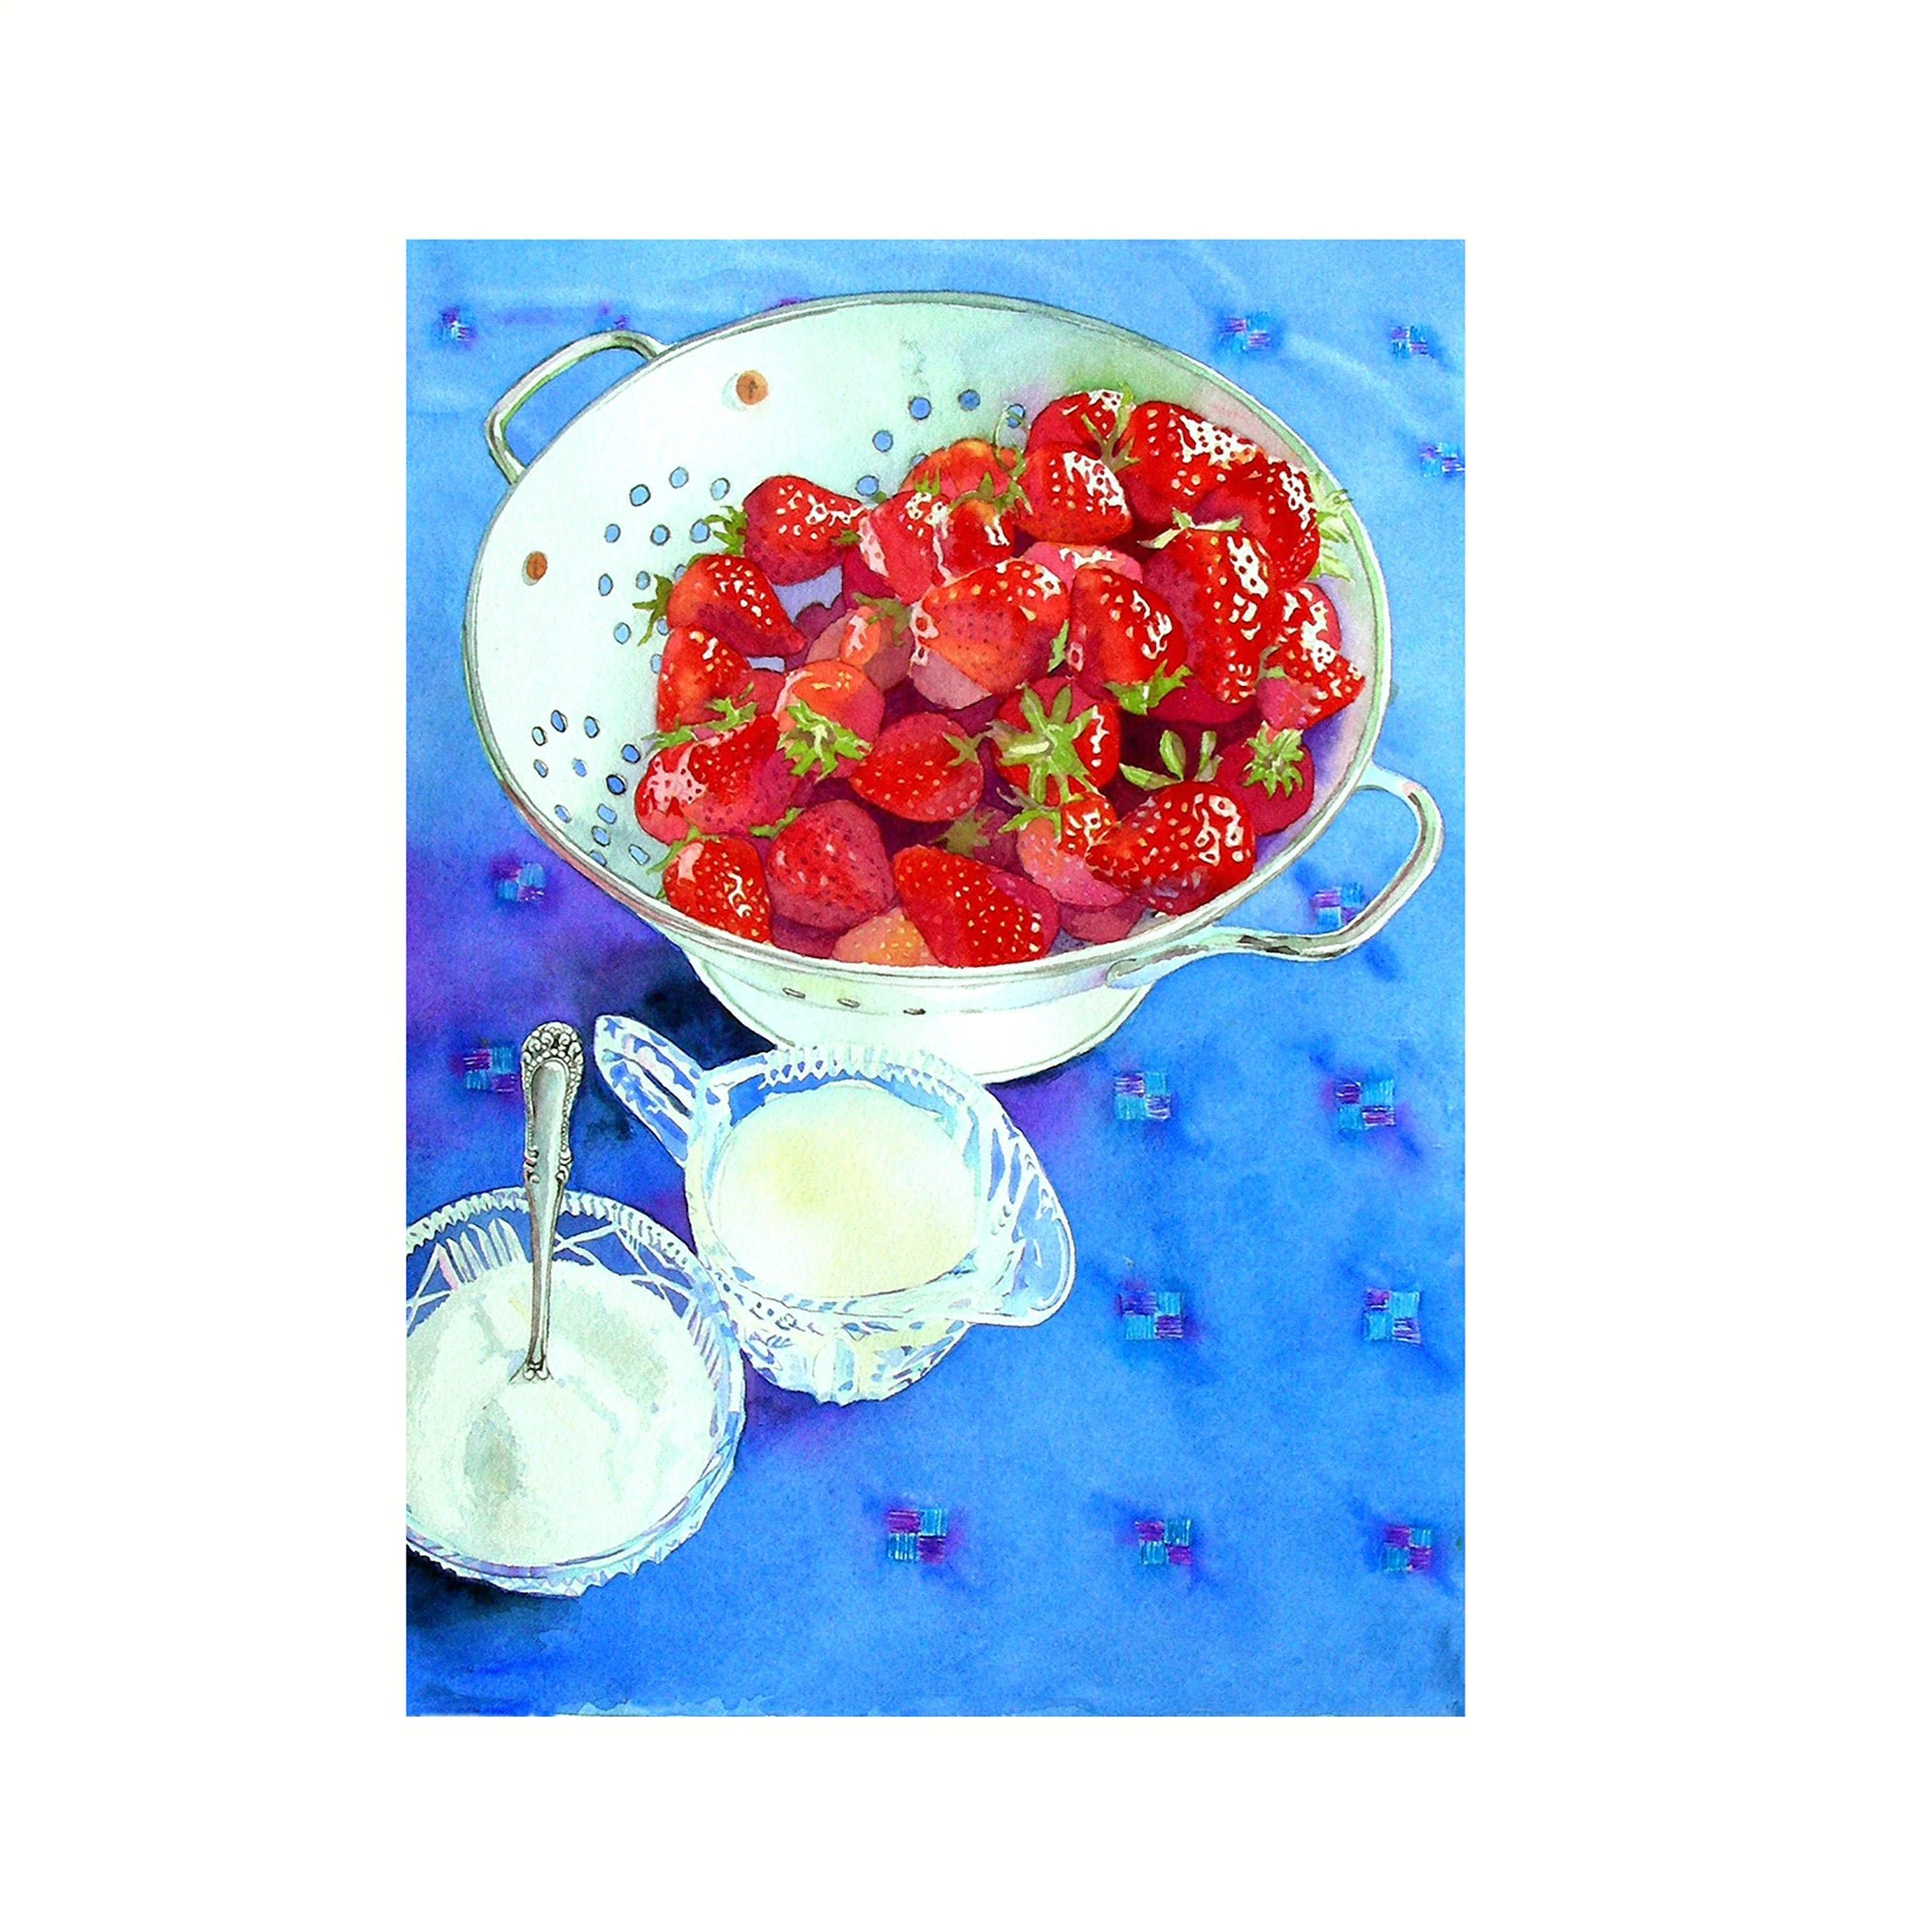 Wall Decor For My Kitchen Strawberry Art Prints Kitchen Art For Fun Red White Blue Fruit Still Life Watercolor Free Shipping